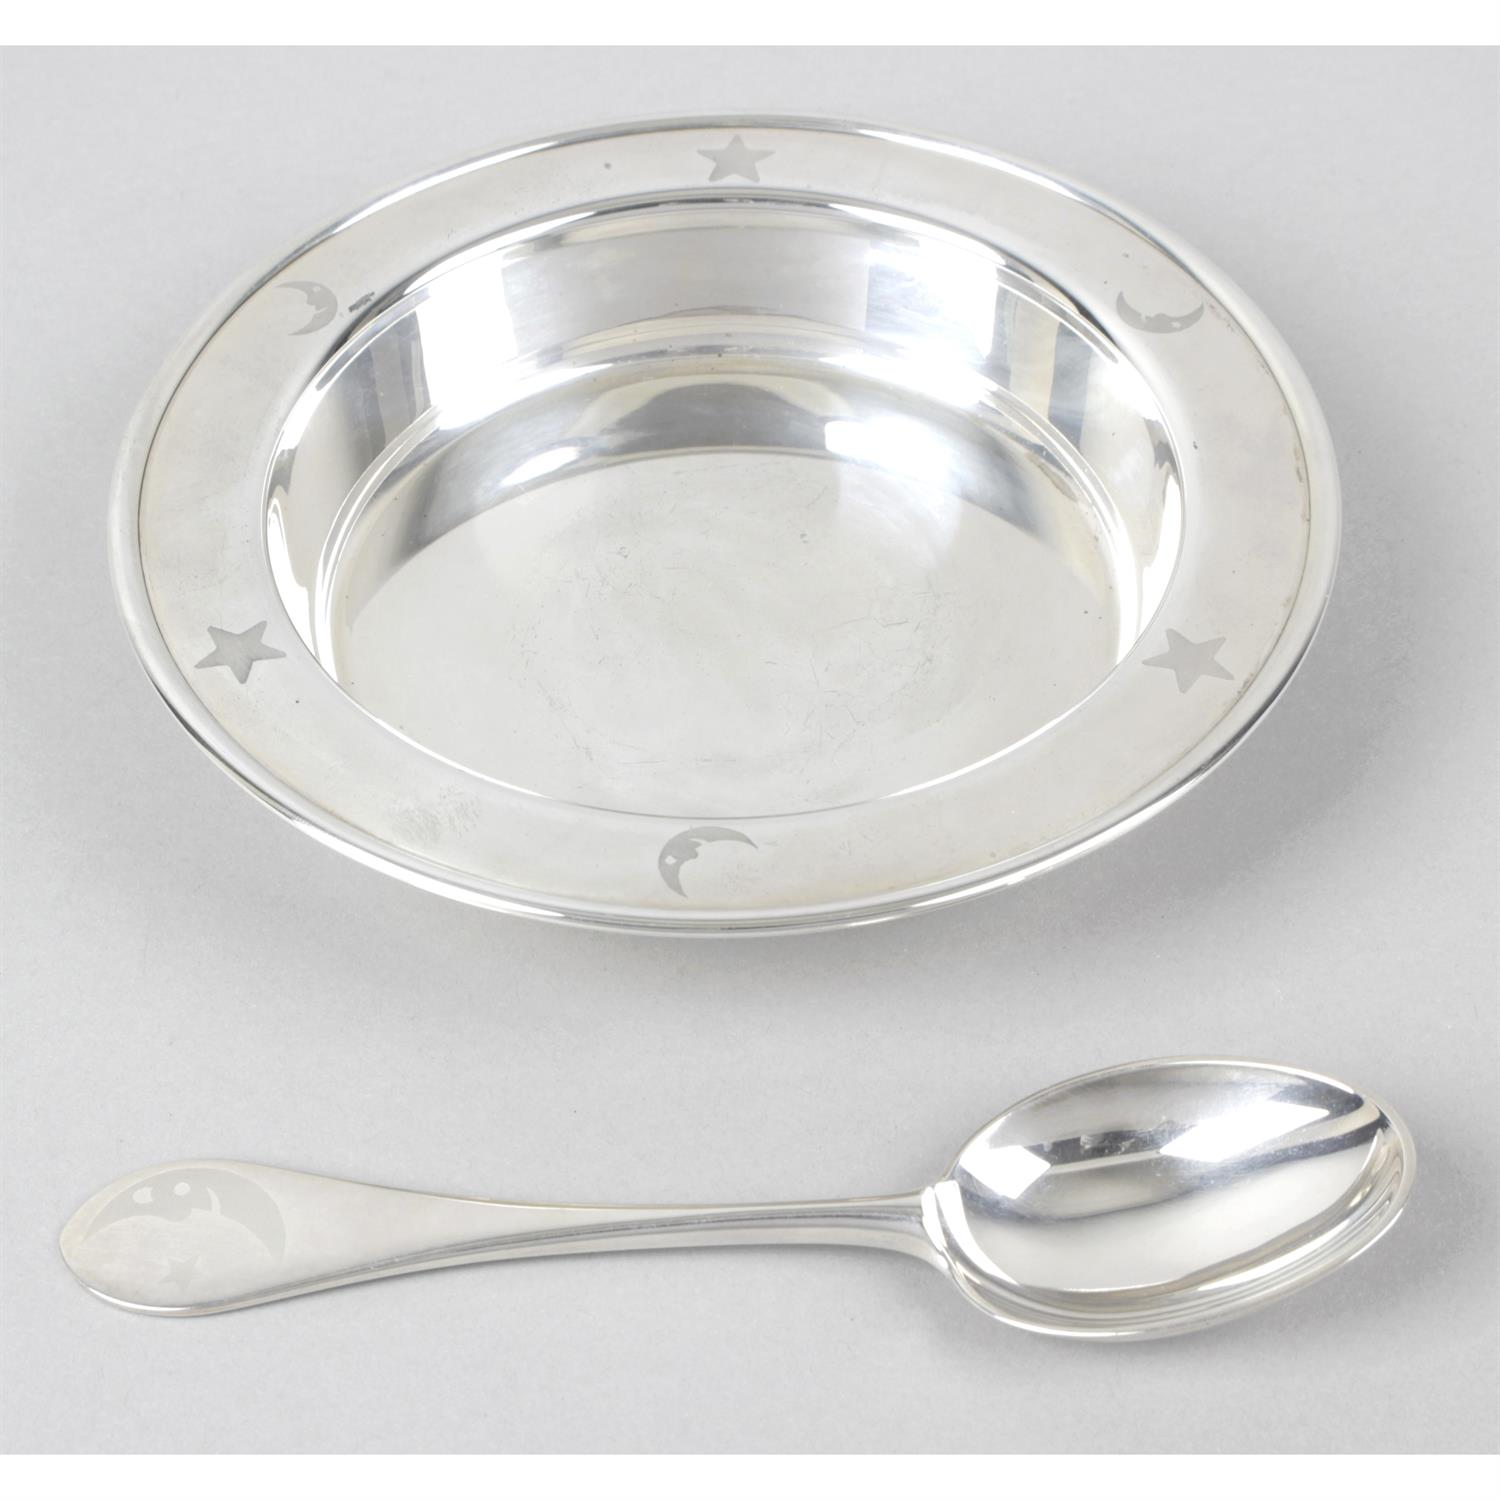 A modern silver child's dish and spoon.